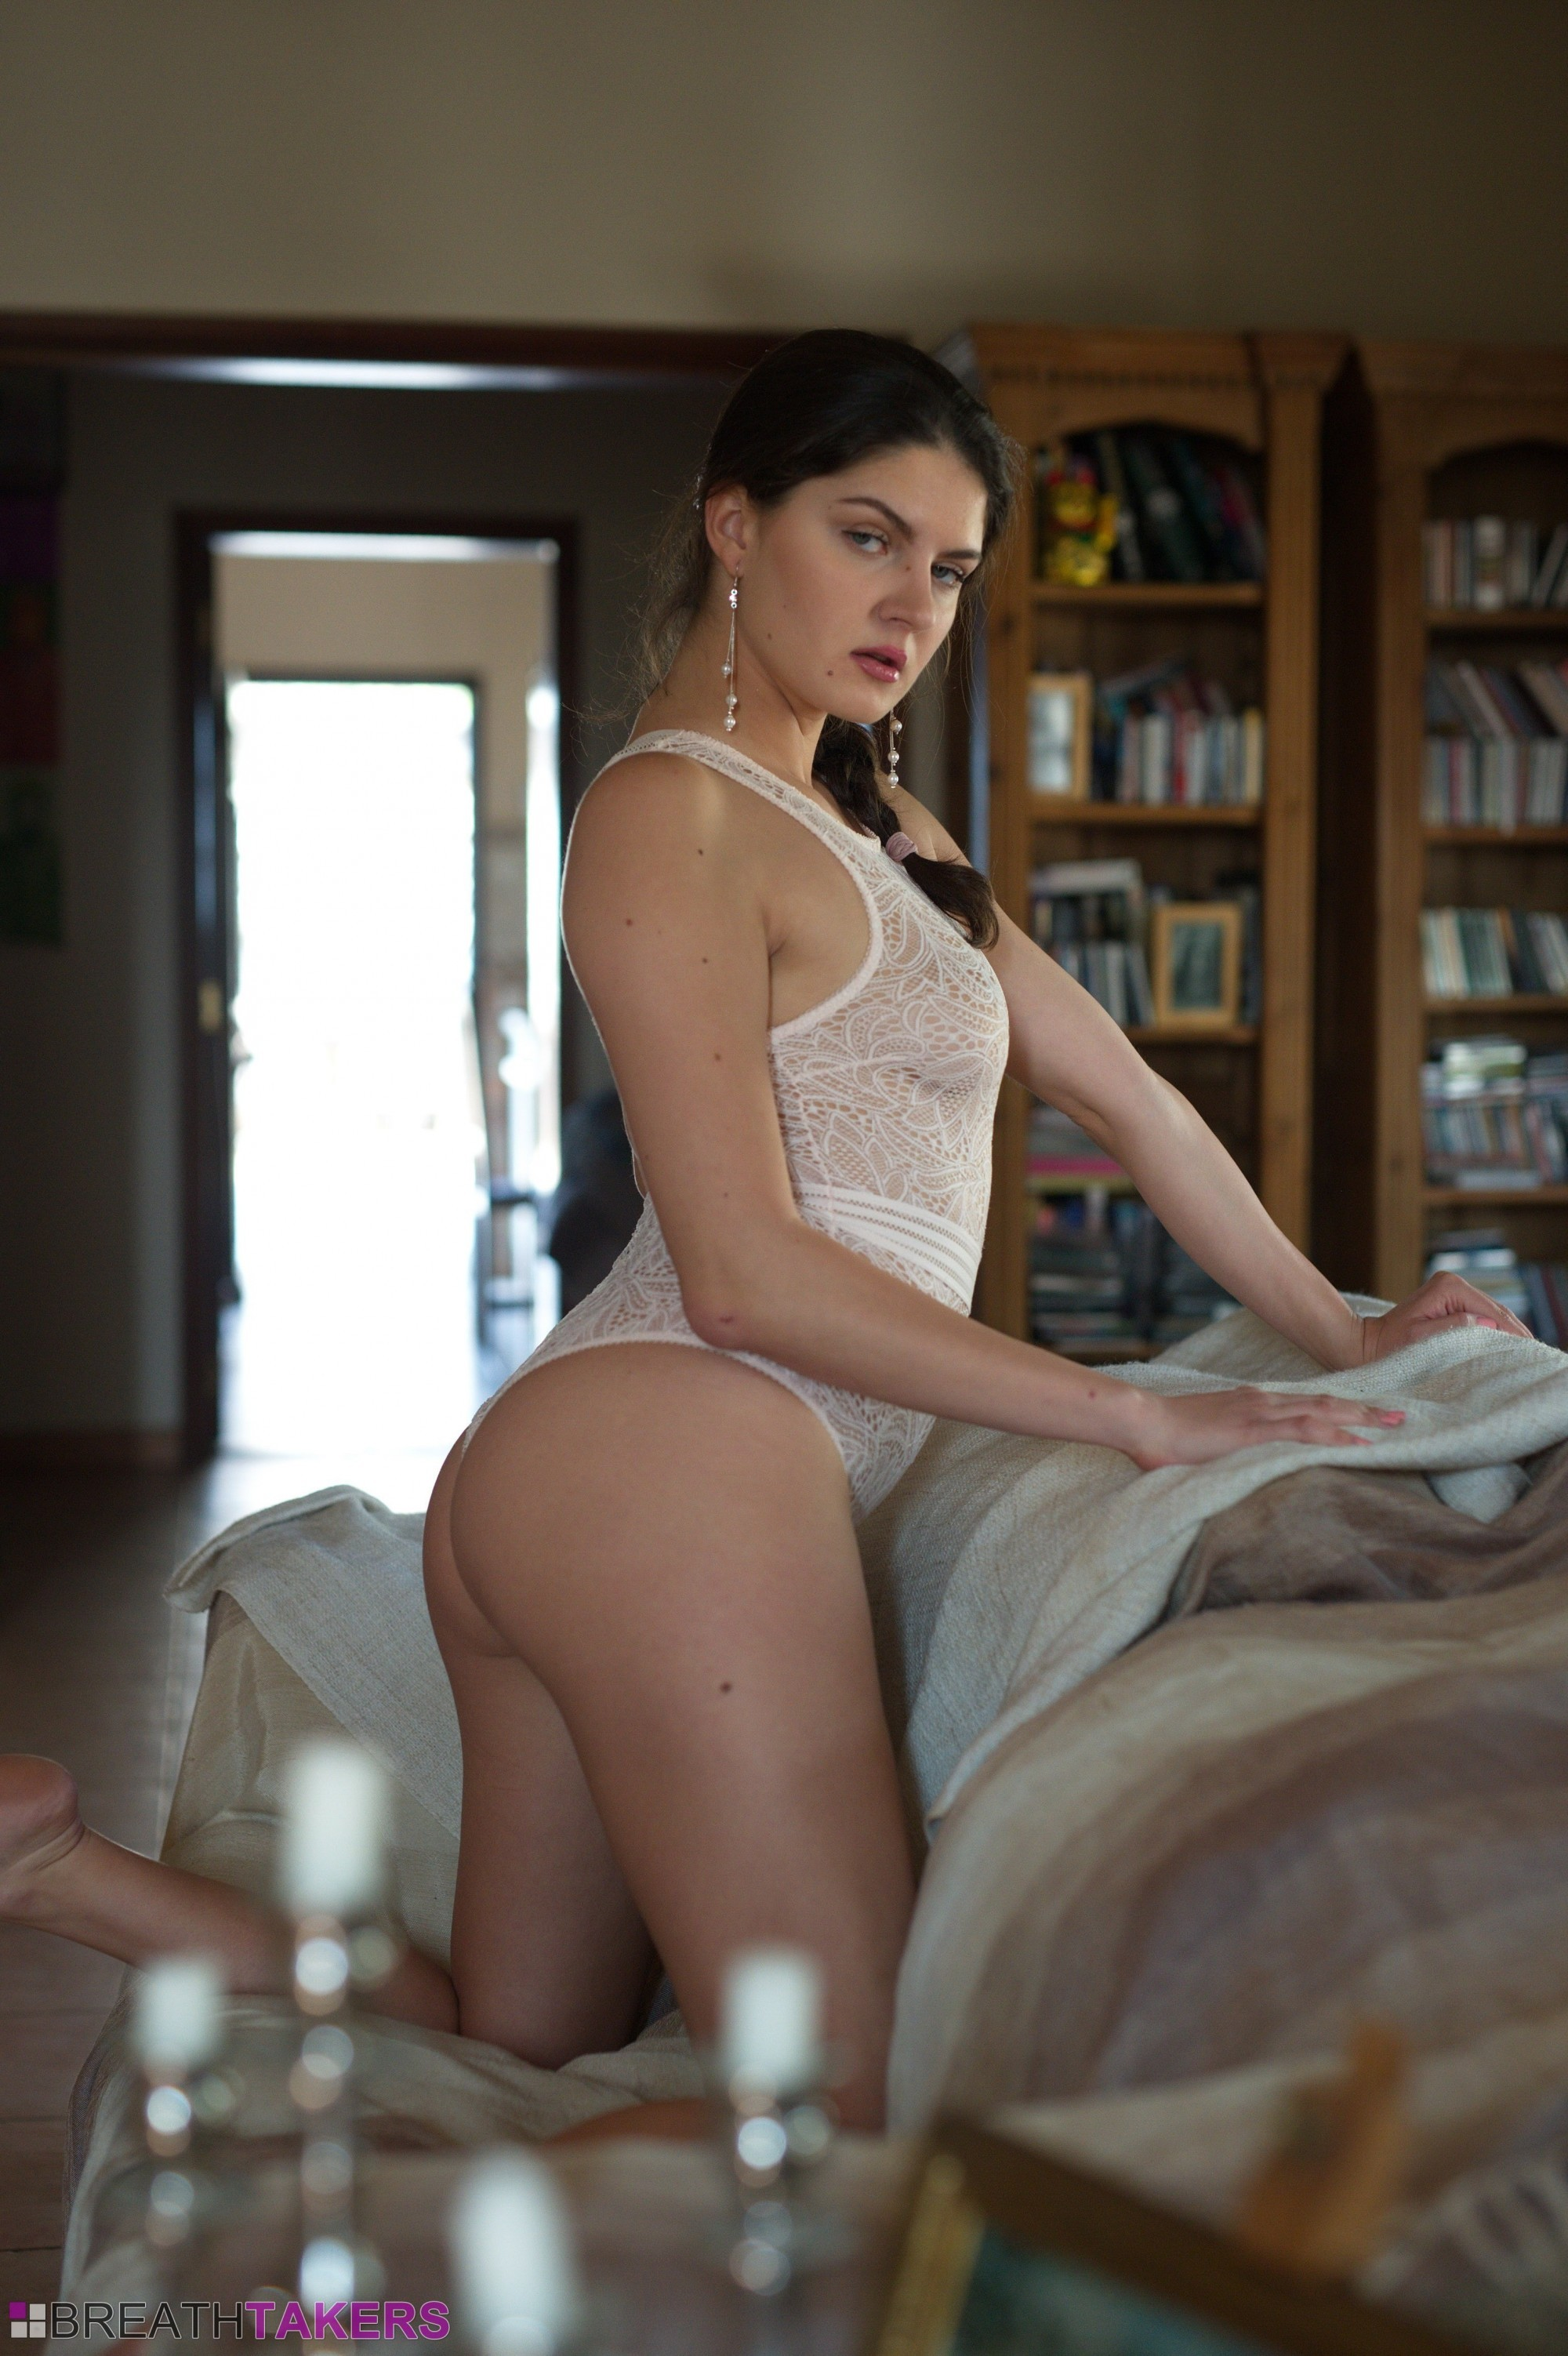 italian babe francesca dicaprio is naked, horny and home alone – sky